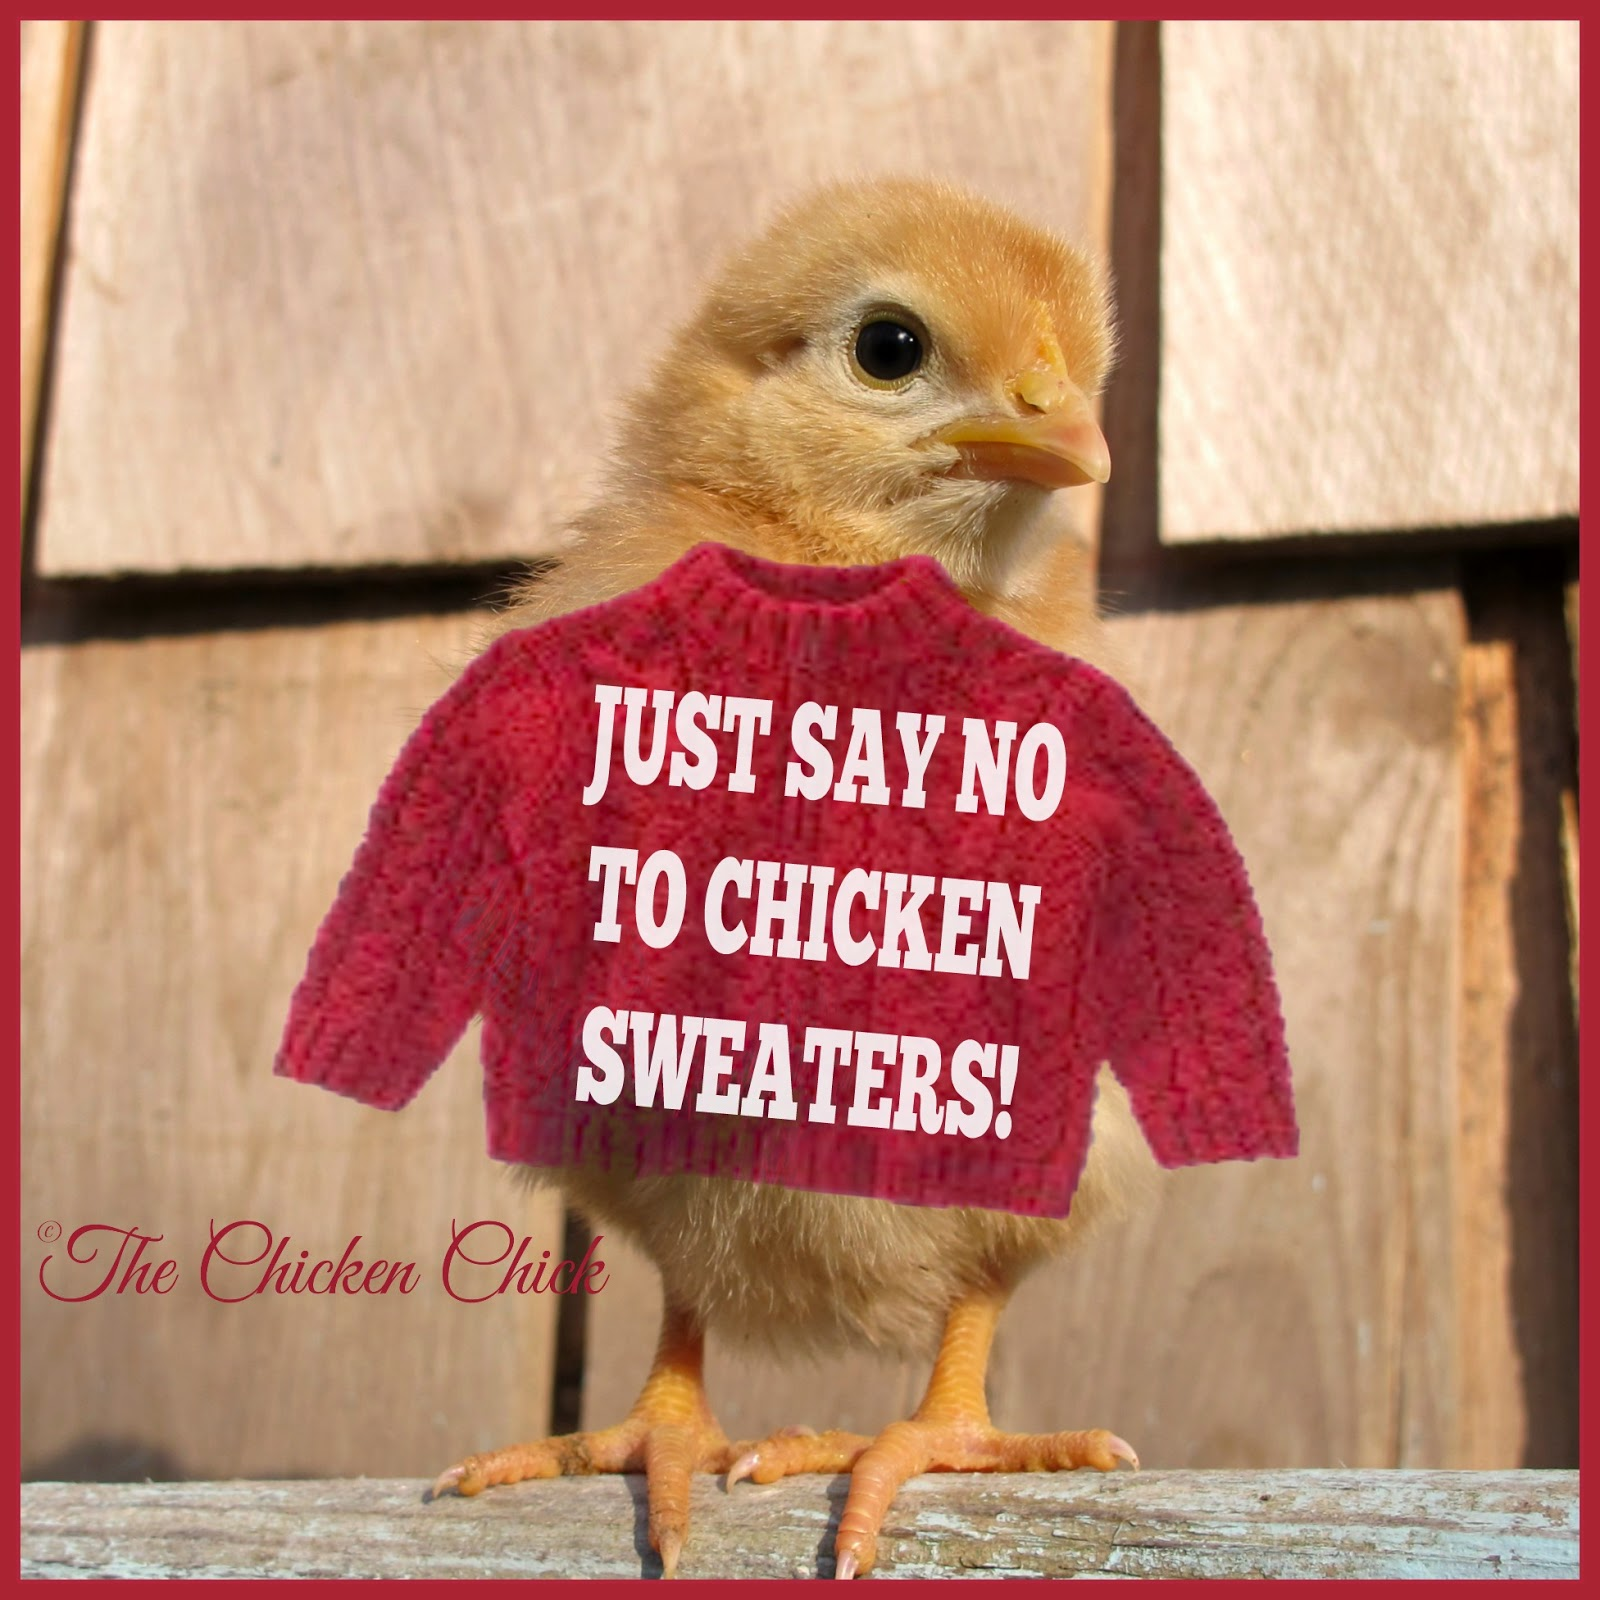 chicken sweaters are not only unnecessary, they may be counterproductive, here's why: